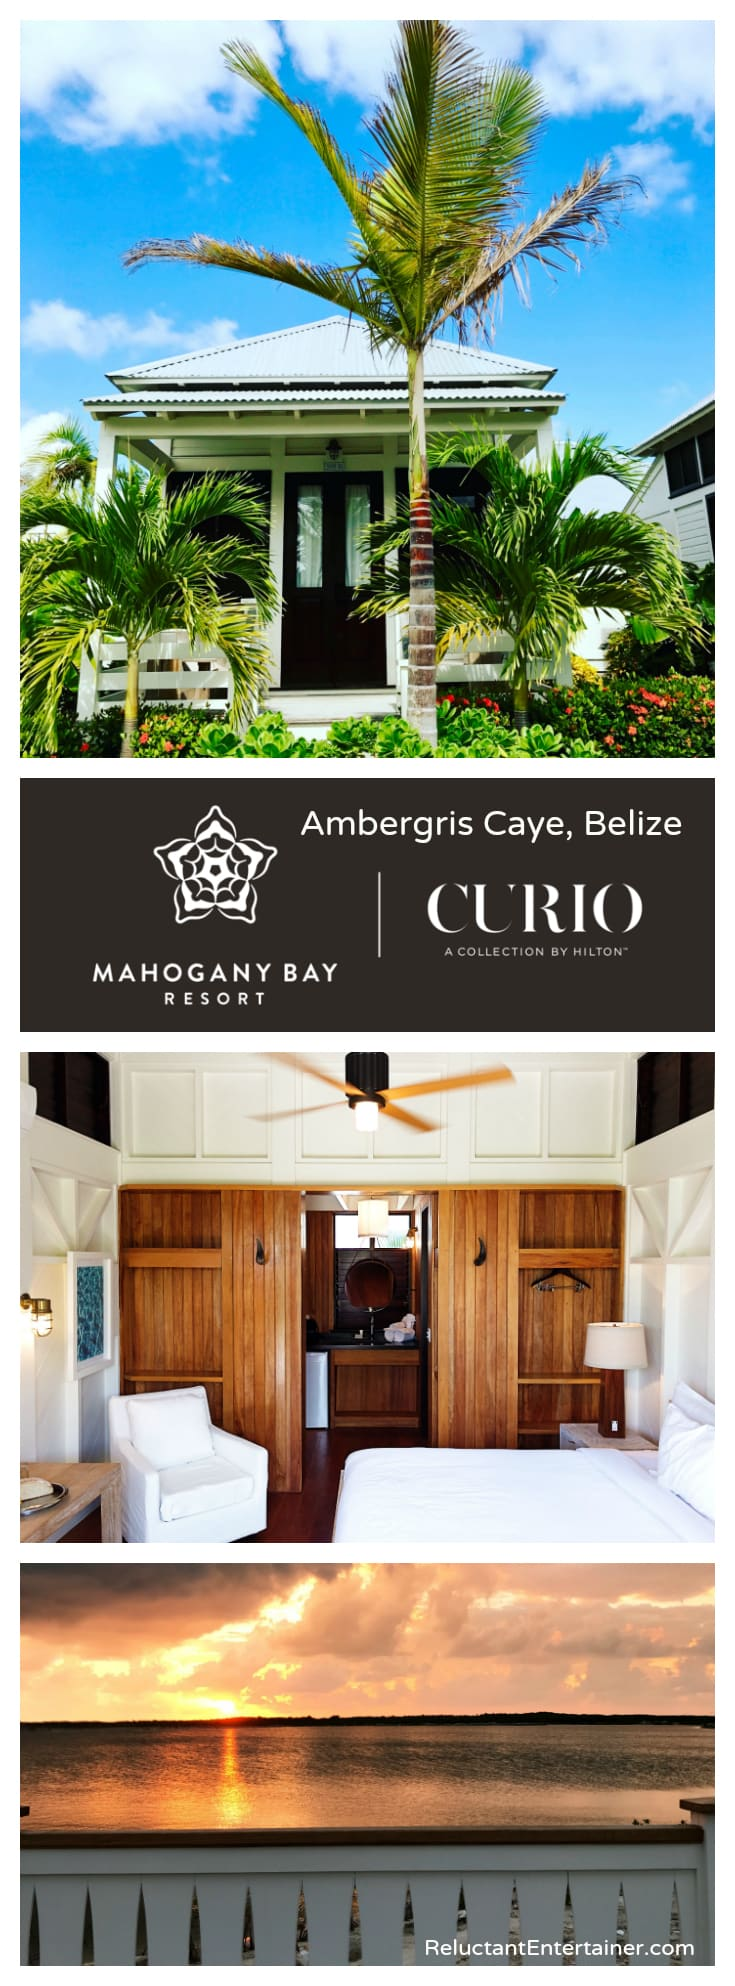 Mahogany Bay Resort, Ambergris Caye, Belize